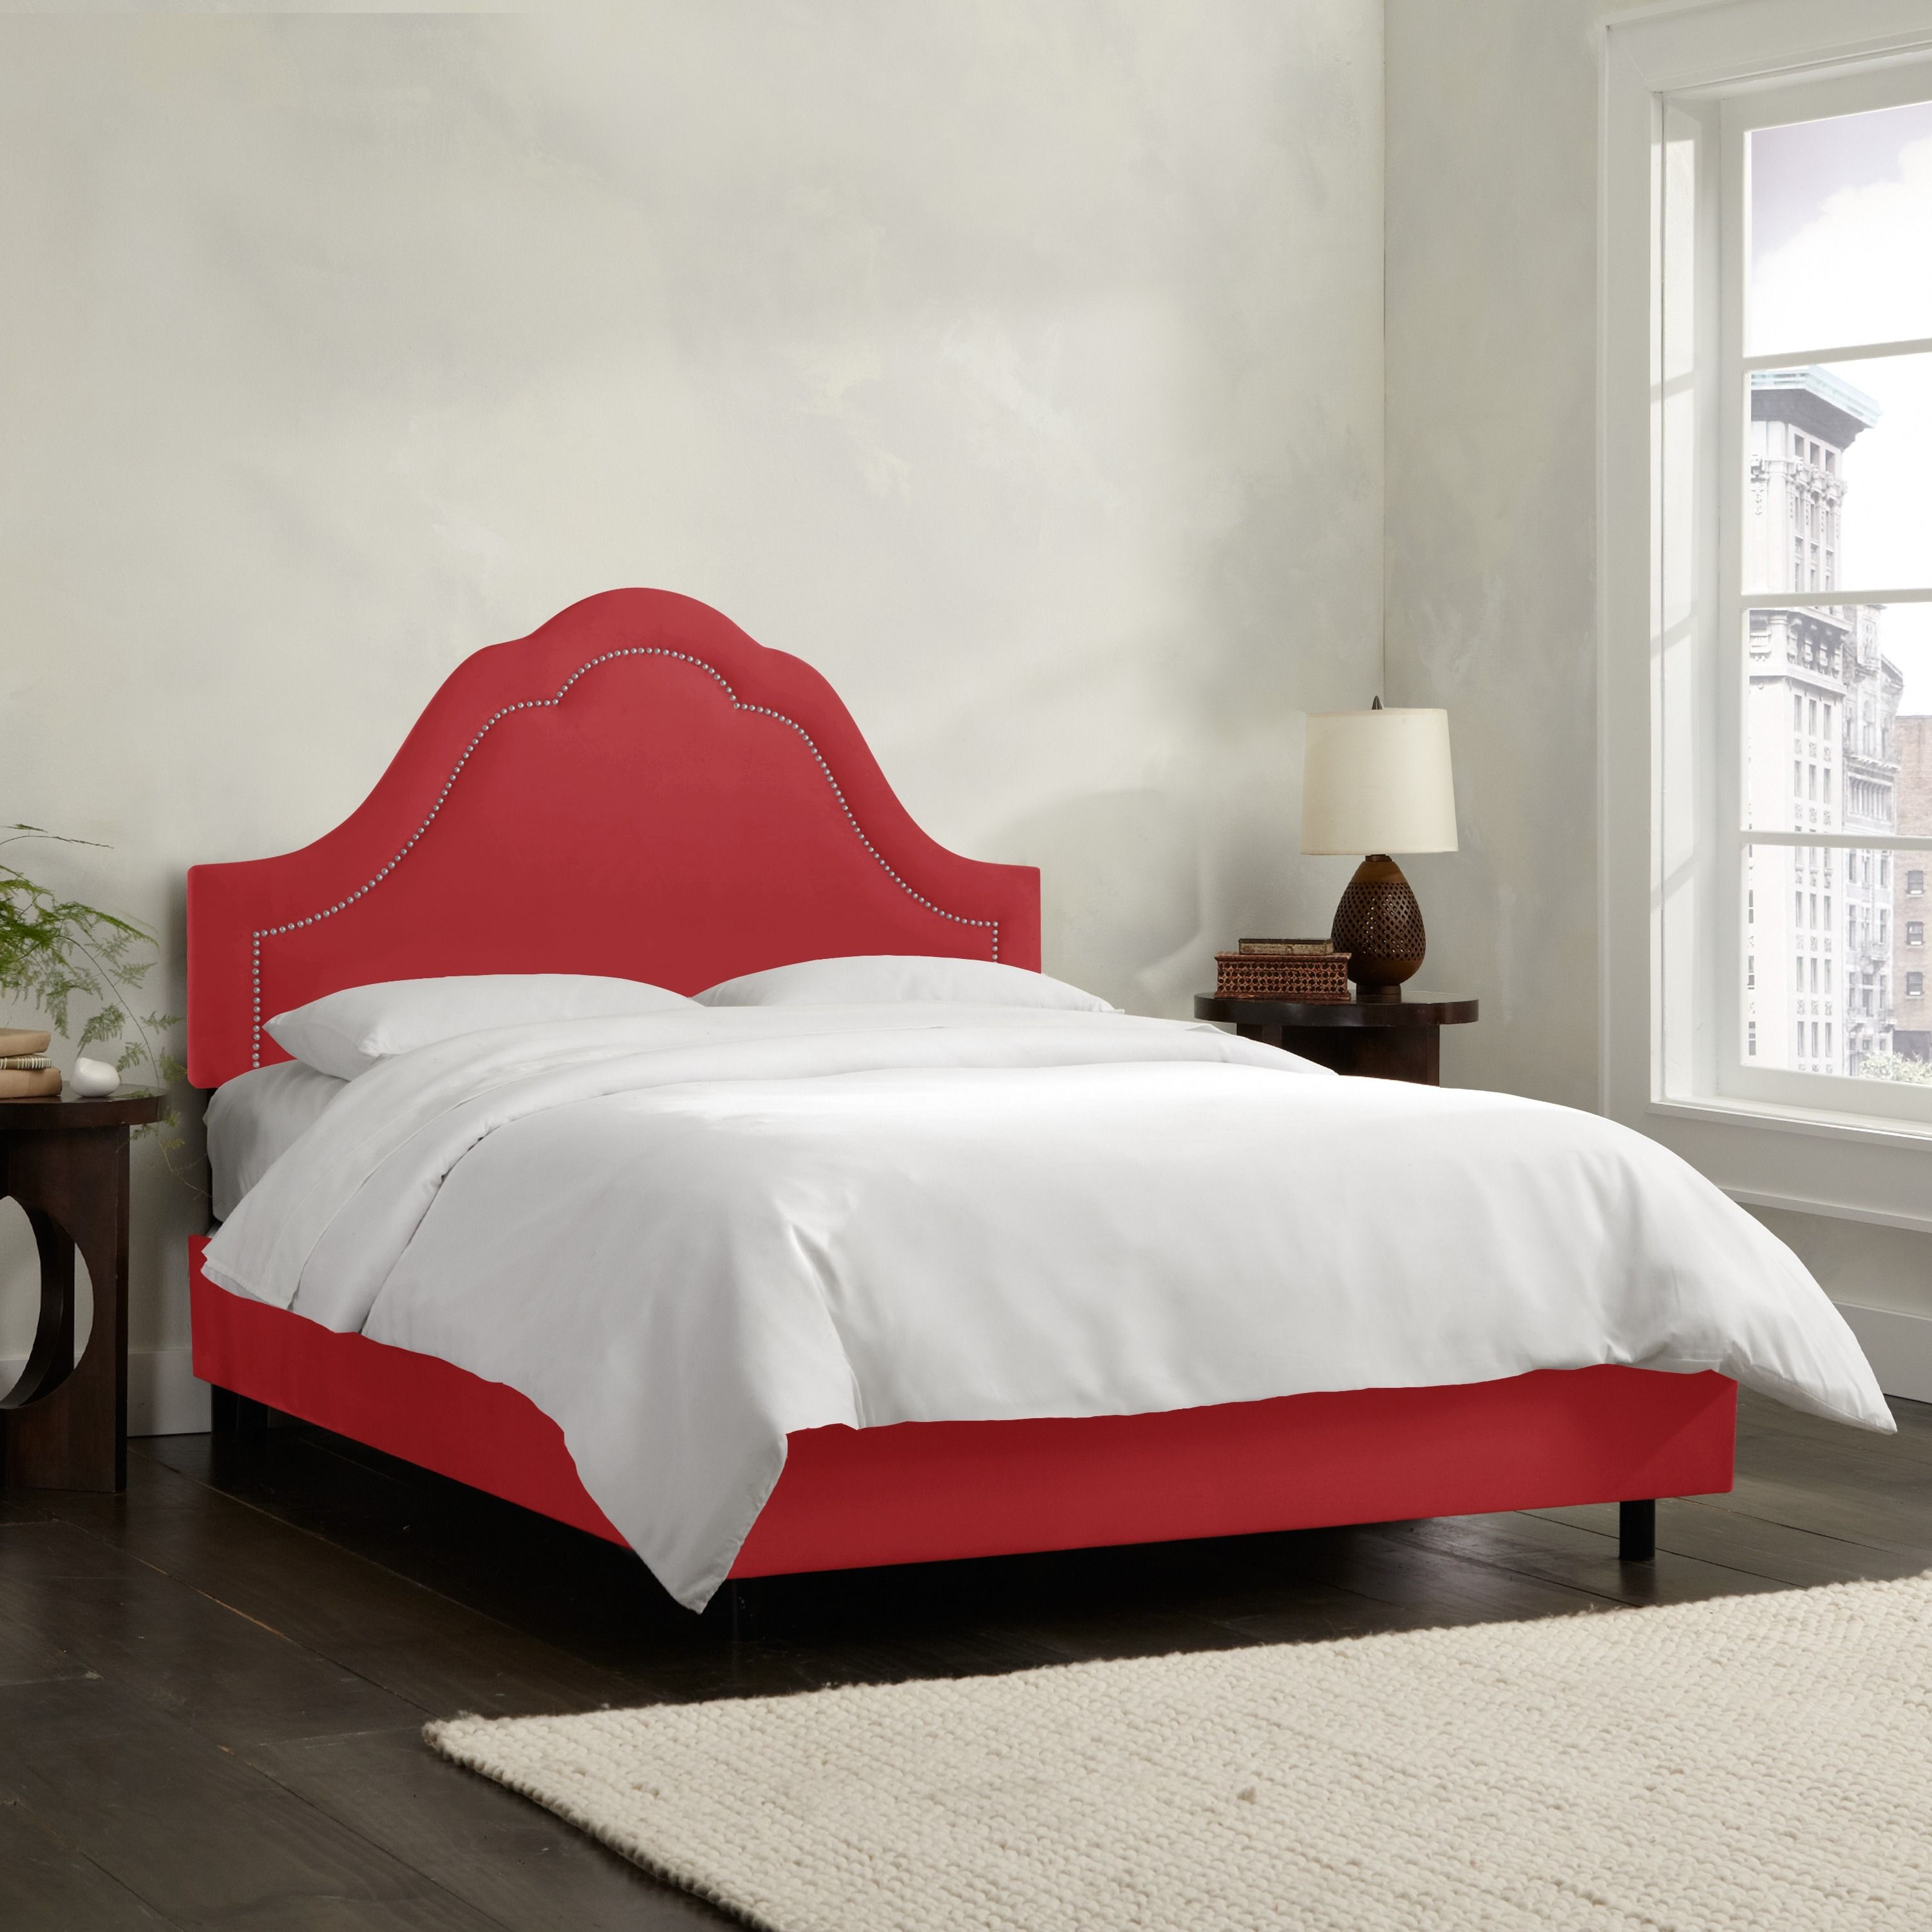 Skyline furniture inset nail button bed in microsuede products